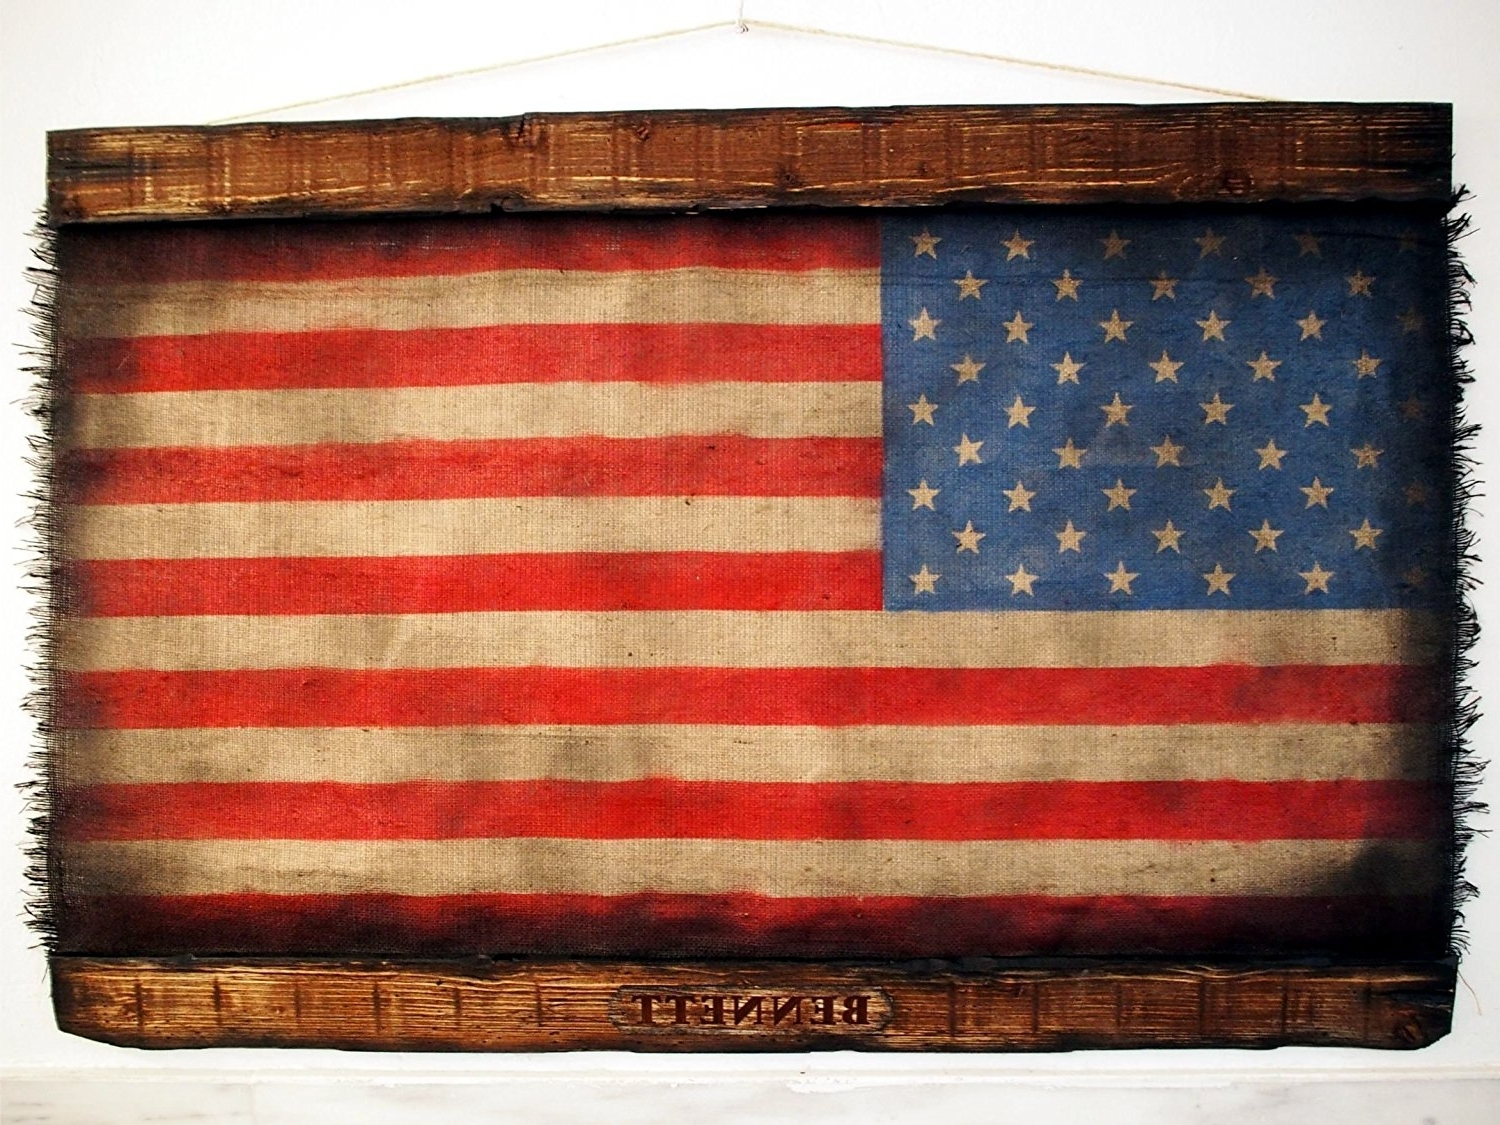 Well Known American Flag Fabric Wall Art Pertaining To Amazon: American Flag Made Of Worn Out Burlap And Wood (View 2 of 15)